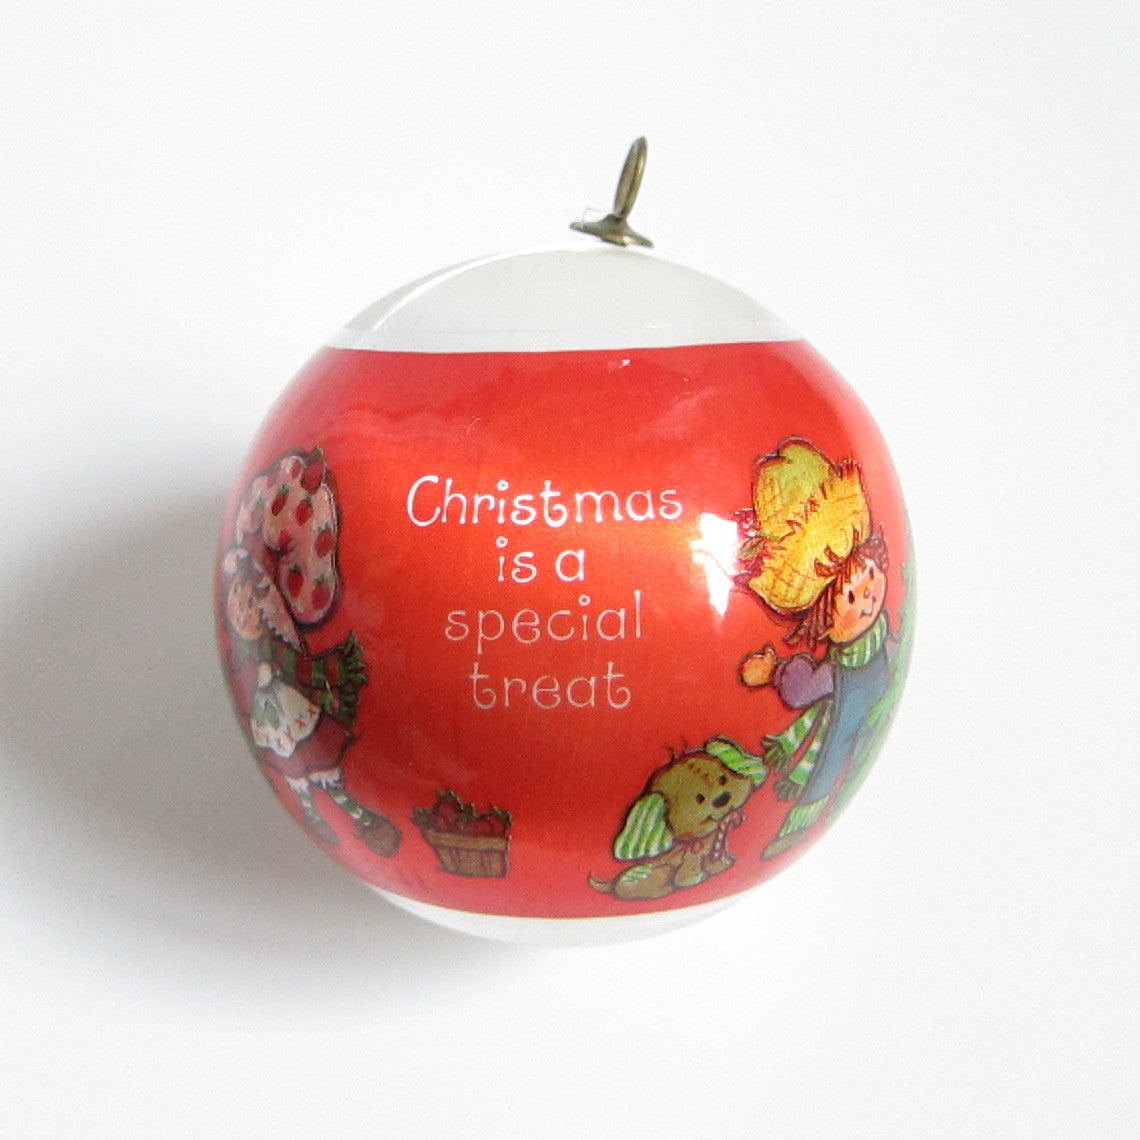 Christmas is a Special Treat Strawberry Shortcake ornament